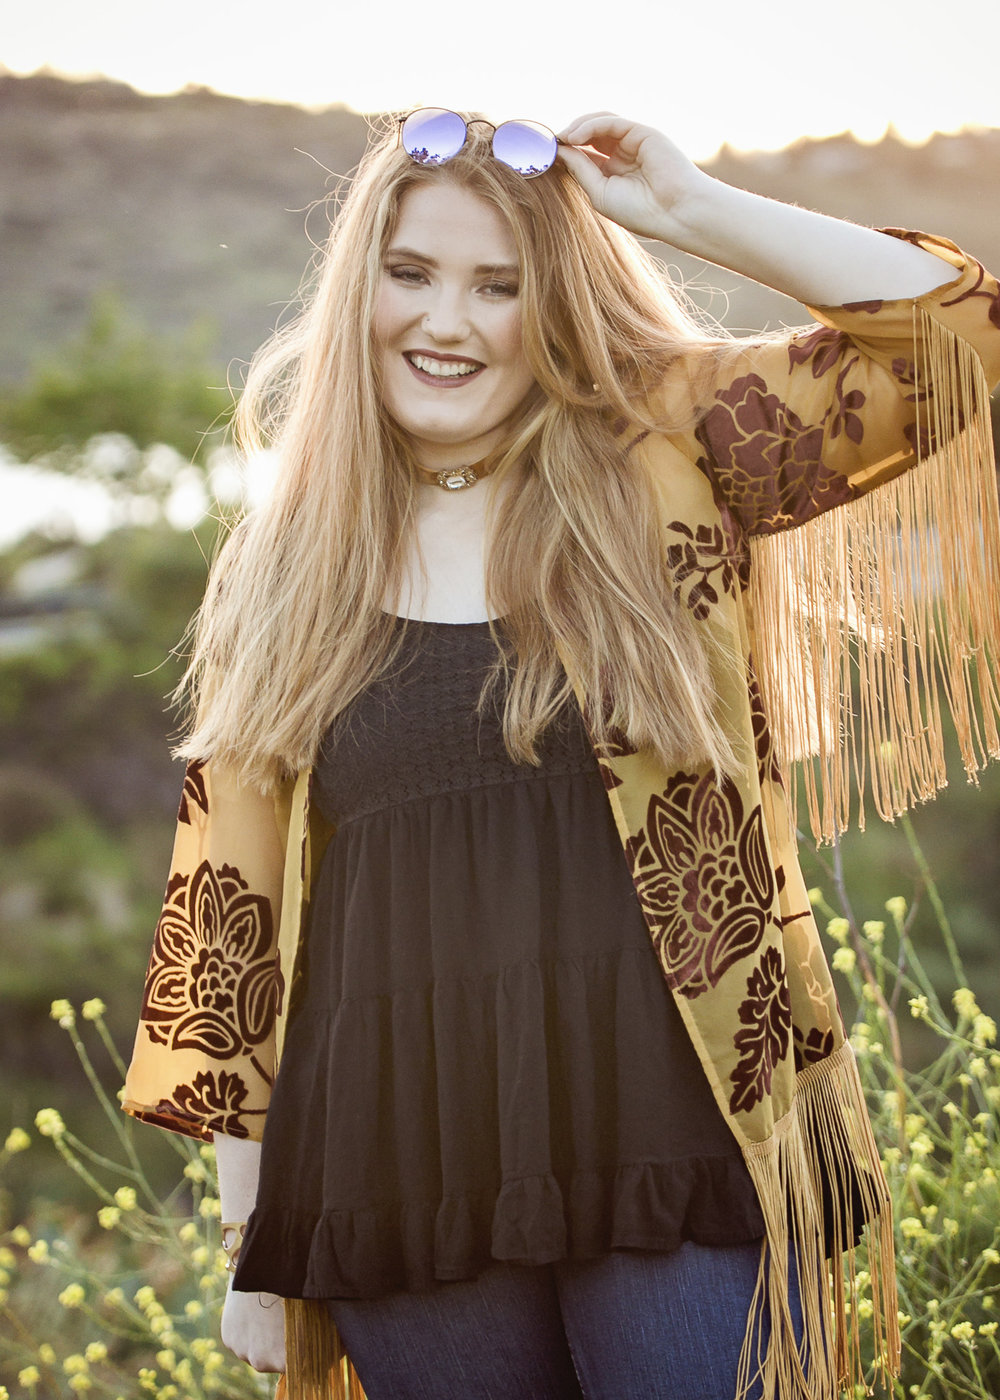 shawna-parks-photo-Moa-Smith-high-school-senior-San-Diego020.jpg